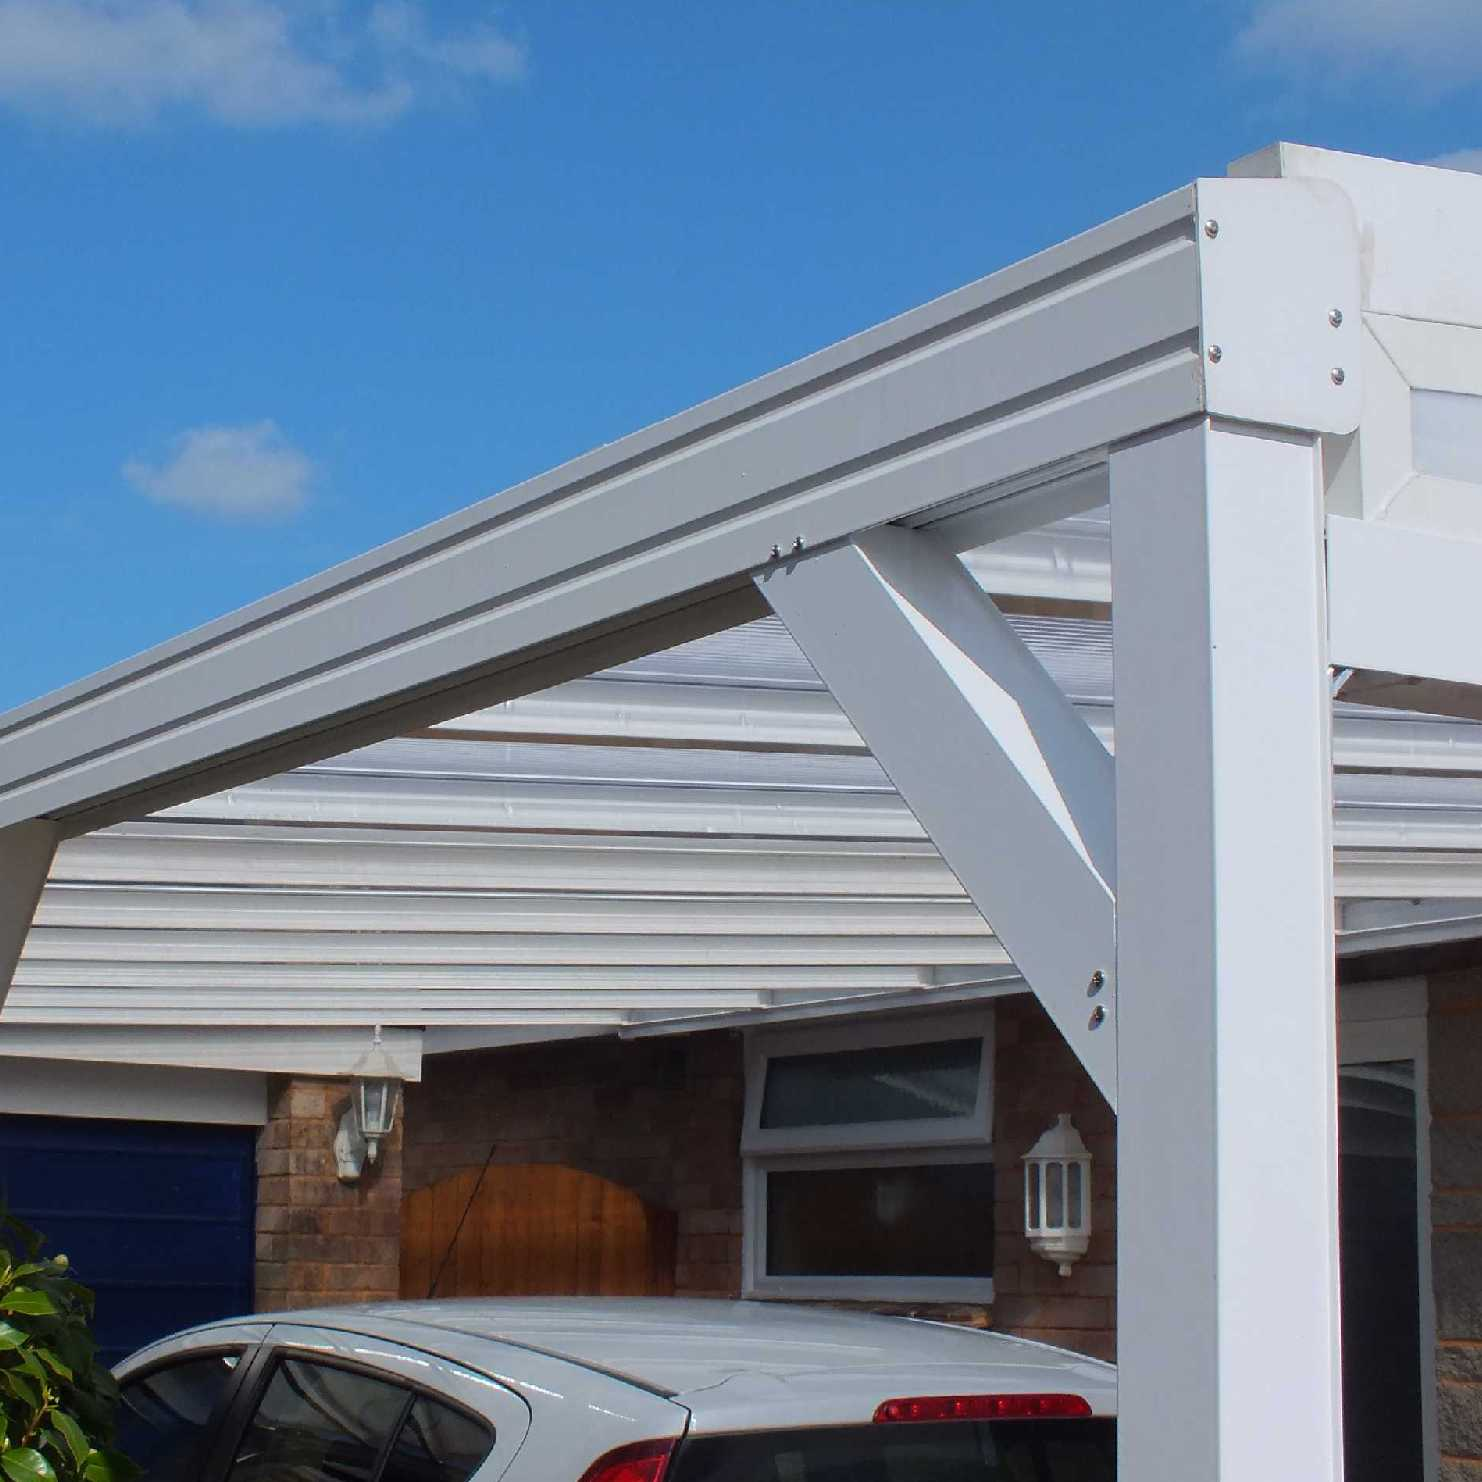 Great deals on Omega Smart White Lean-To Canopy with 16mm Polycarbonate Glazing - 7.4m (W) x 1.5m (P), (4) Supporting Posts